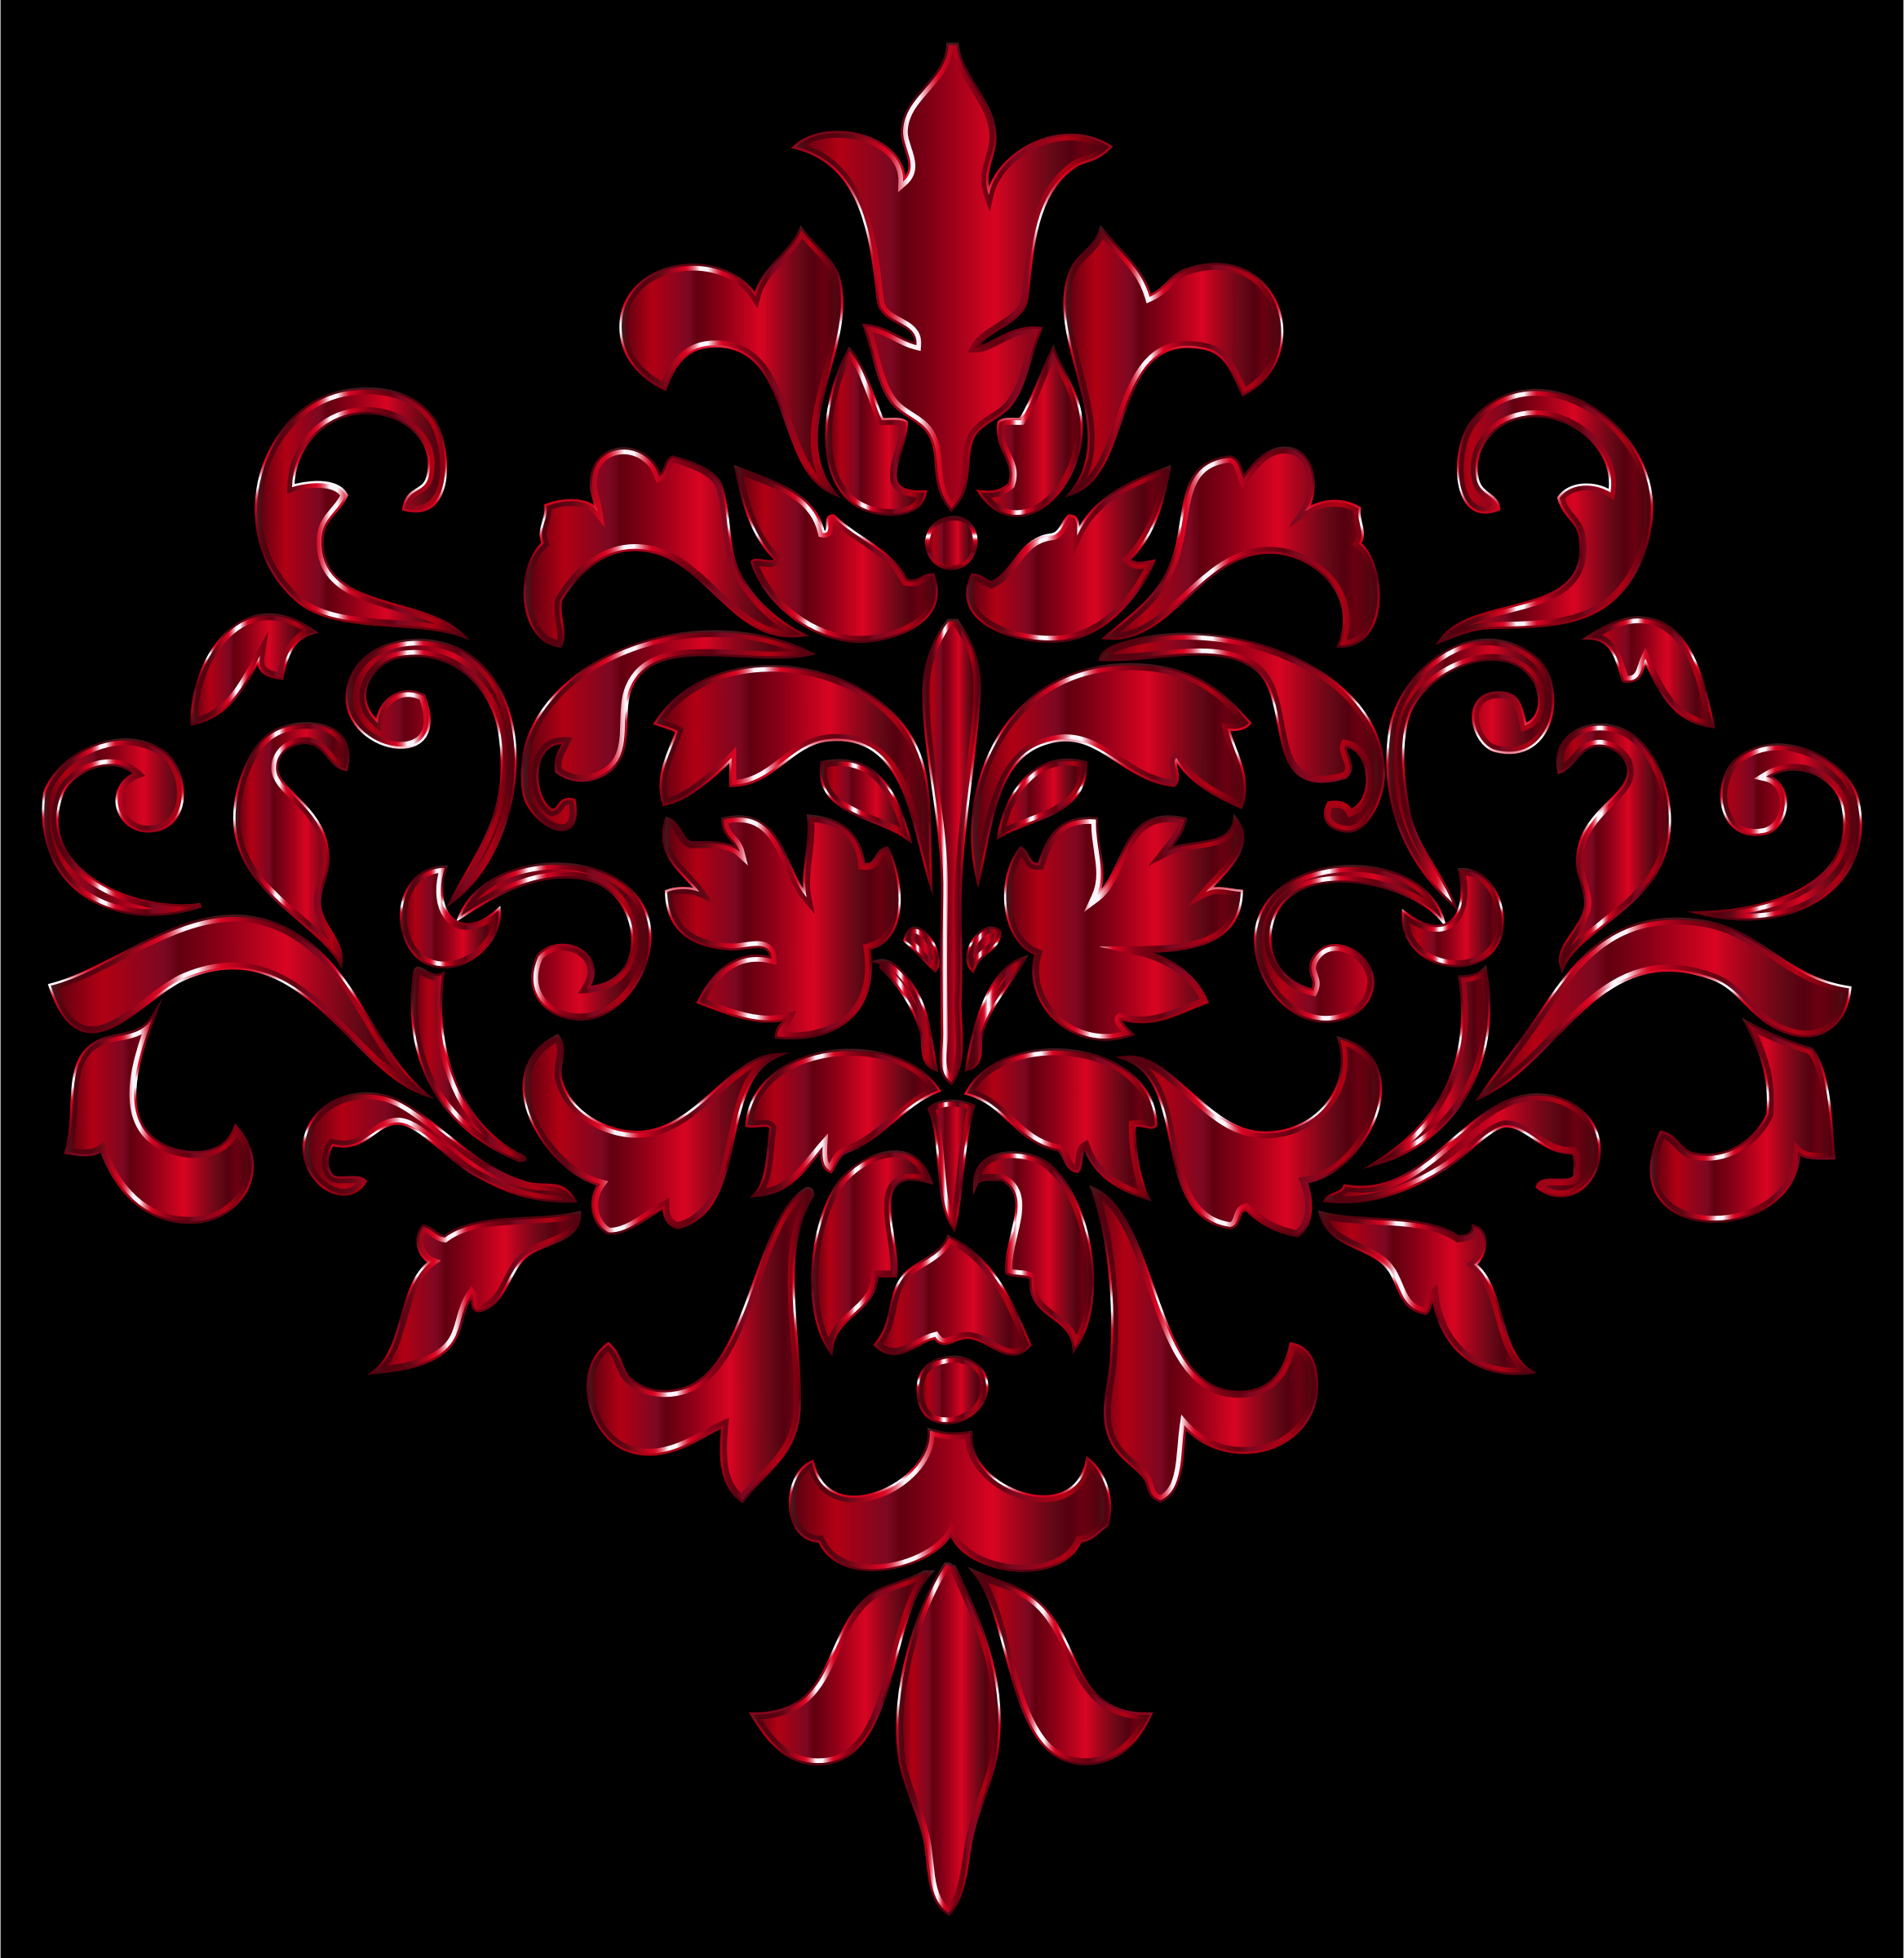 Crimson Damask Design by GDJ